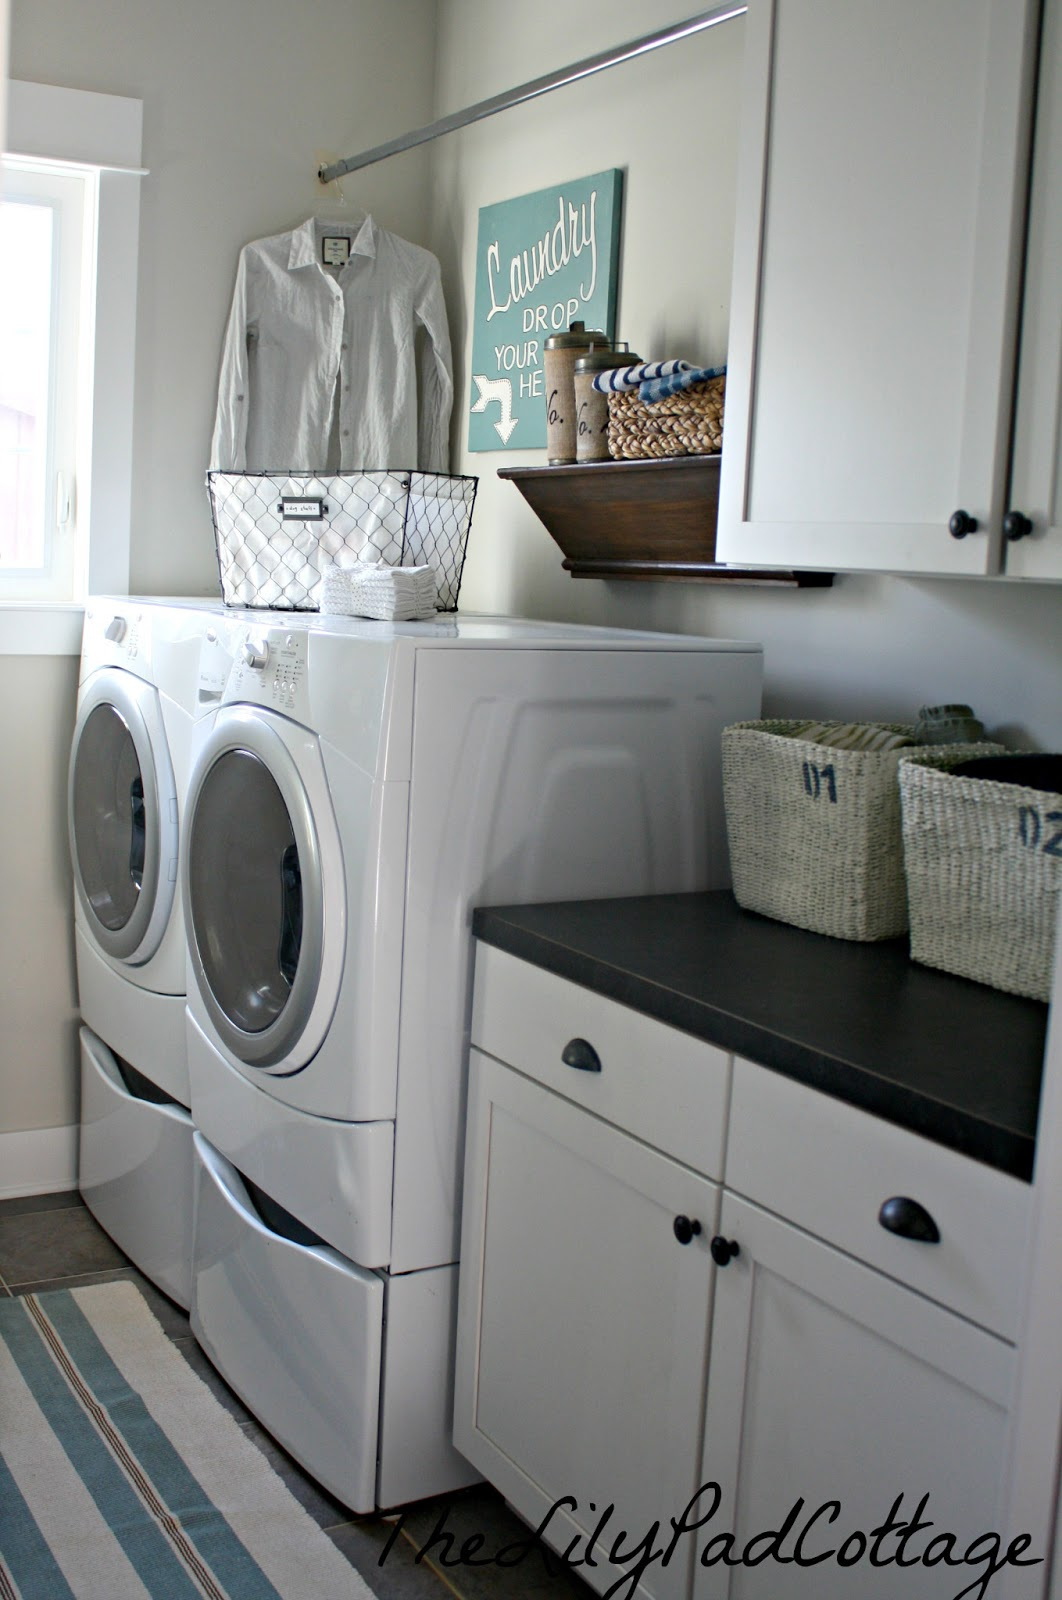 Laundry Room Ideas Small Top Loader With Sink